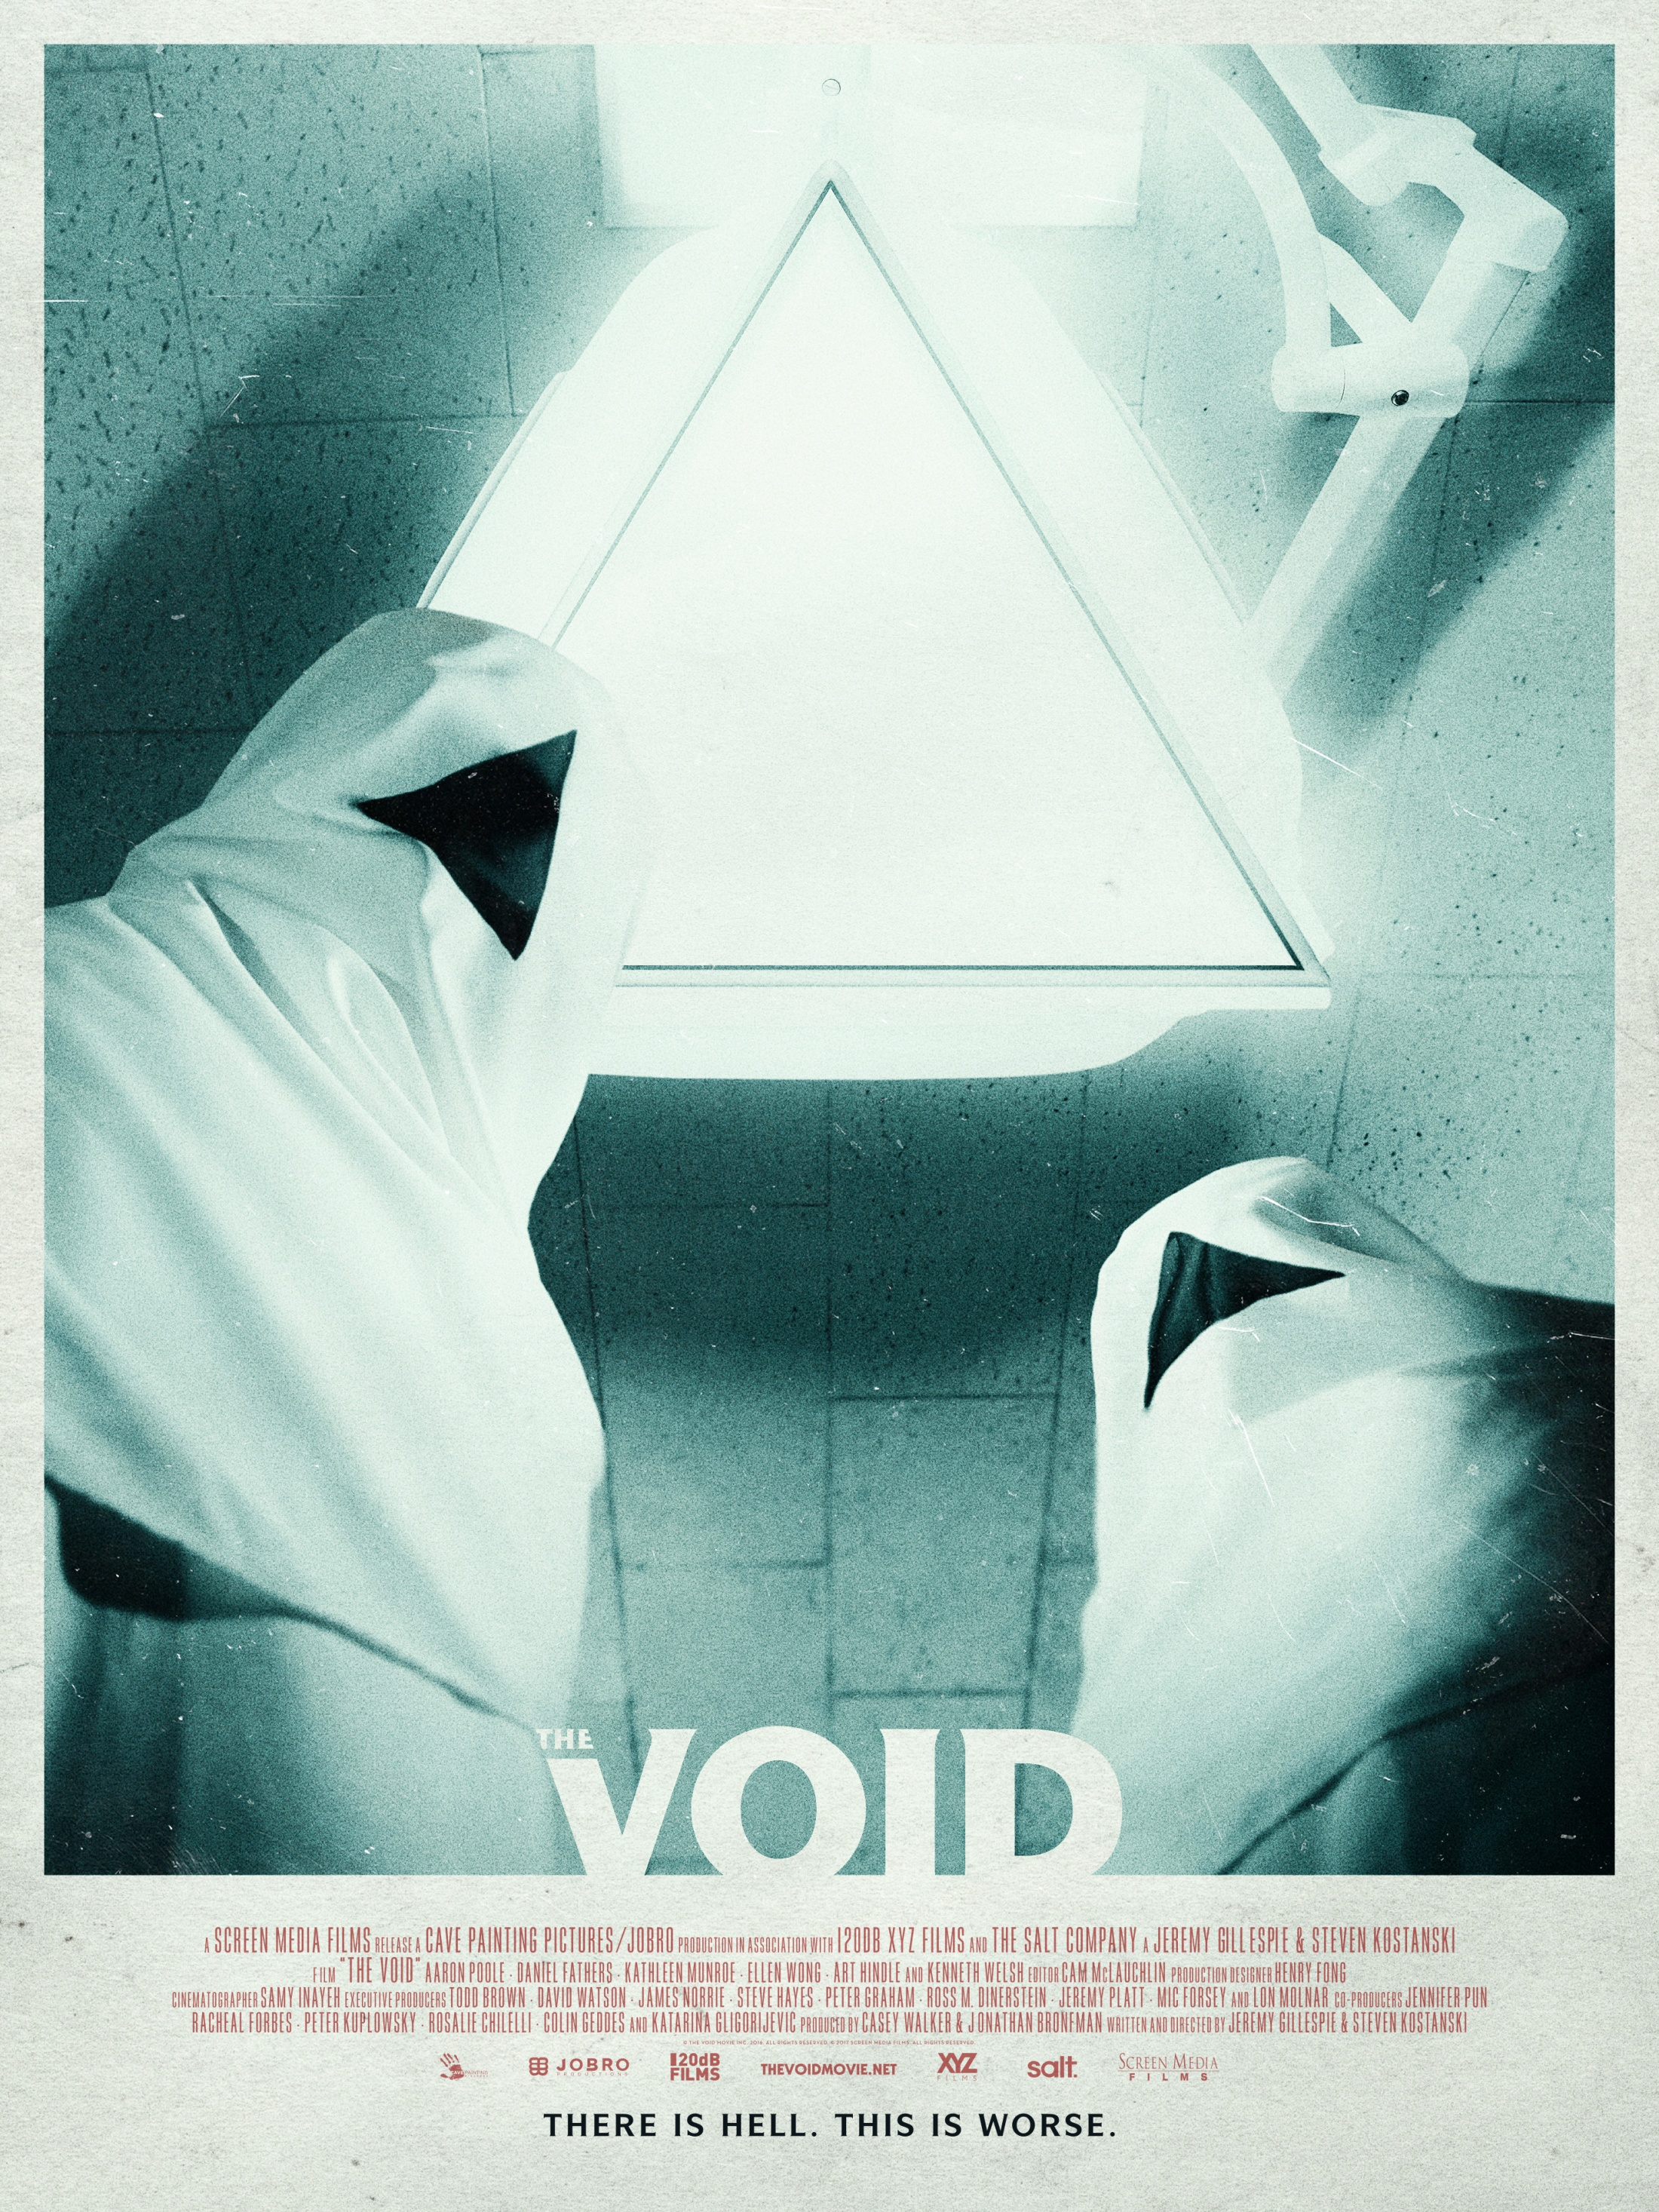 Thumbnail for COPY OF: COPY OF: The Void - Campaign